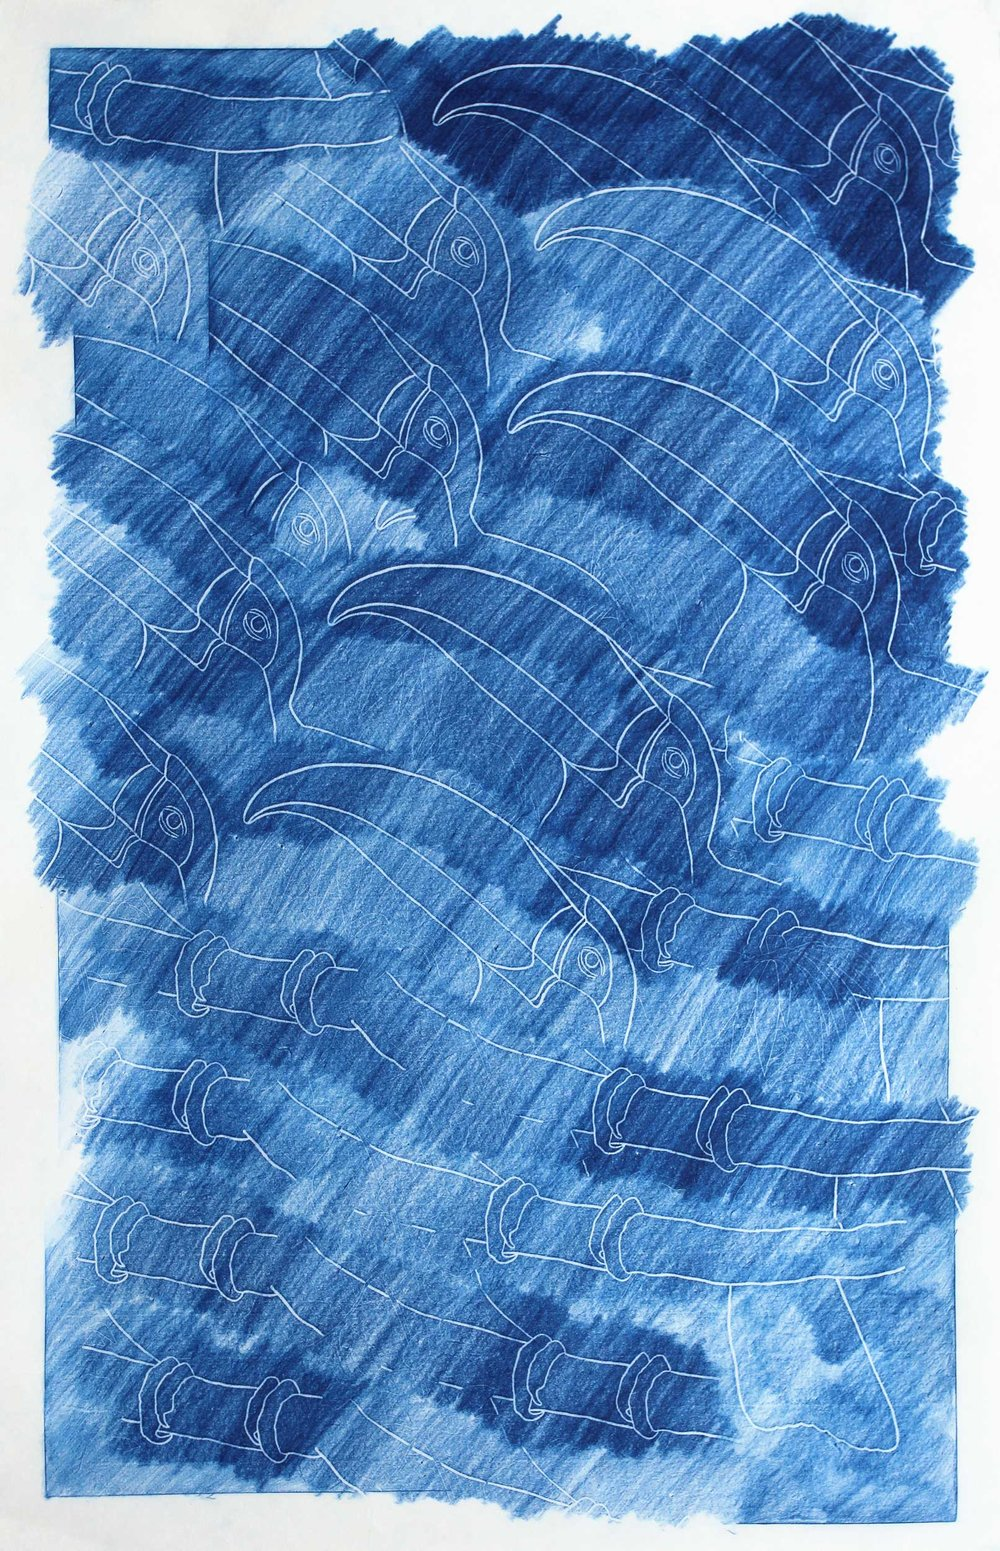 FIVE CAN NOT (FROTTAGE BLUE) - Pencil crayon frottage on Japanese paper95 x 63 cm2018